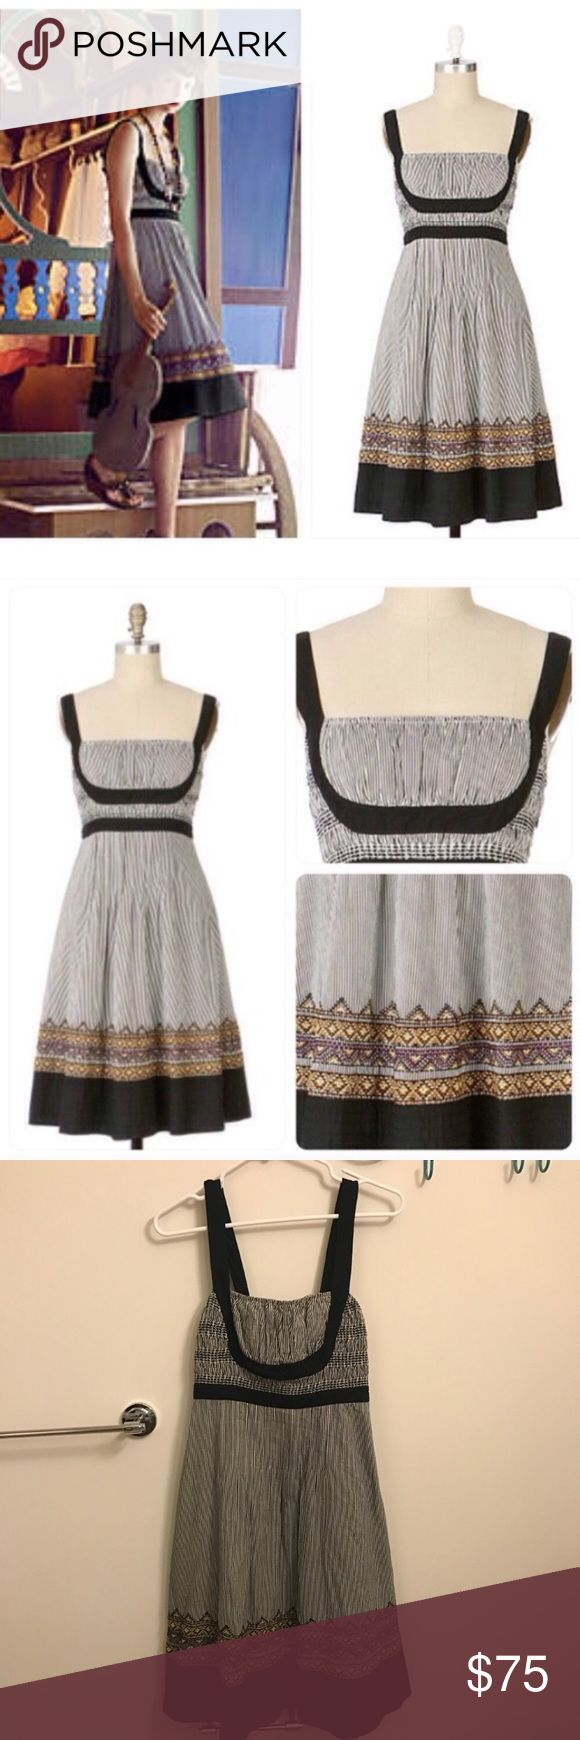 "Anthropologie, Lithe Fiddler's Song Dress Dress with lush skirt adorned with embroidered mountain peaks and a quilted hem. Thin stripes. A-line. Smocked bodice. Side zip. Cotton; cotton voile lining. Length 40"", Waist 14.5"", bust 15"" and stretches to 18"". Anthropologie Dresses"